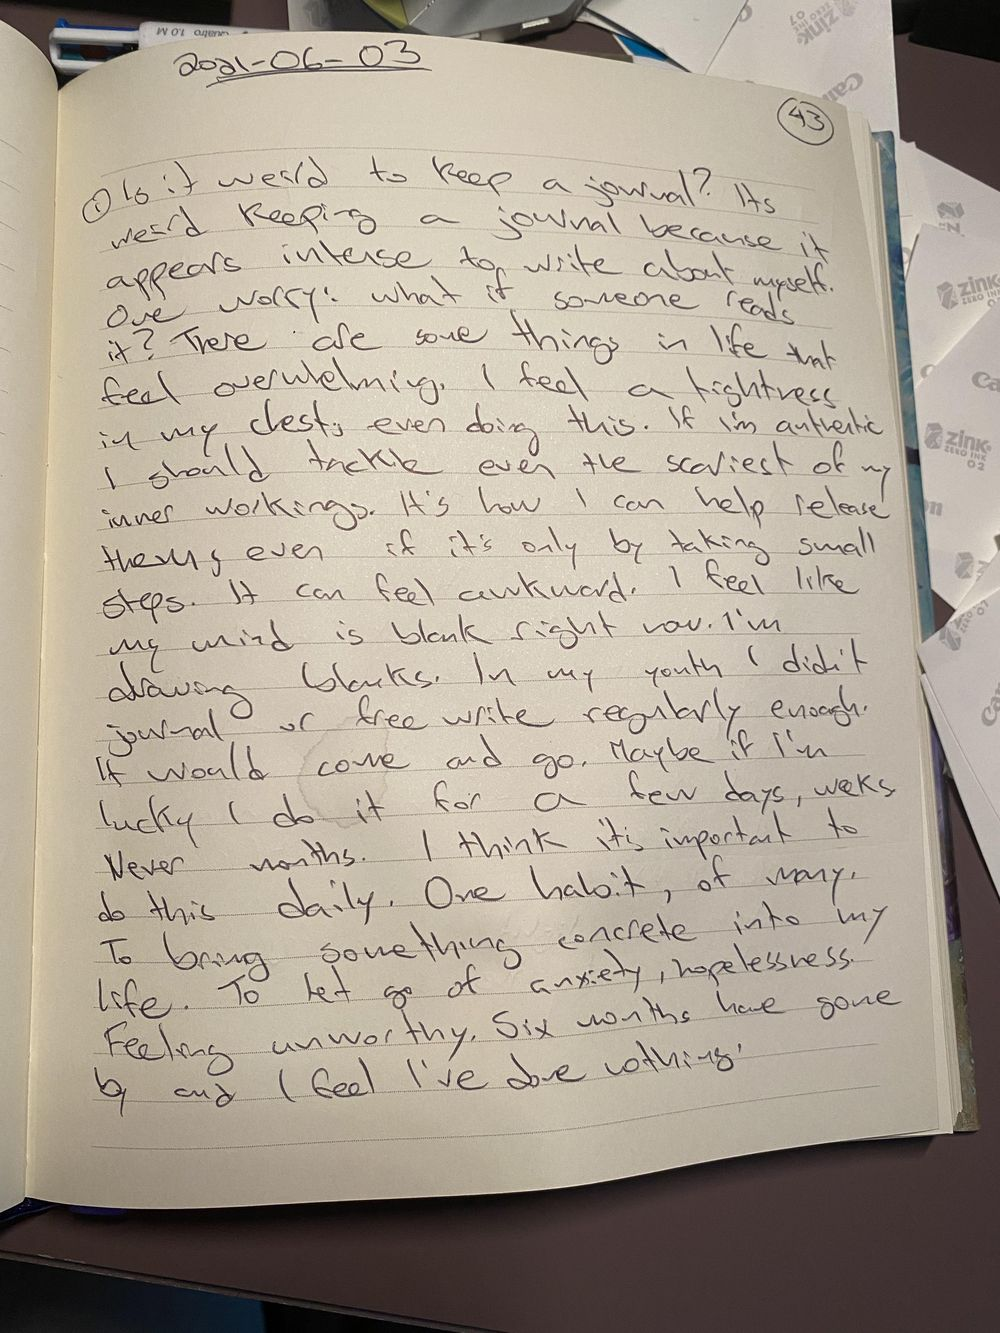 My journal journey… - image 1 - student project